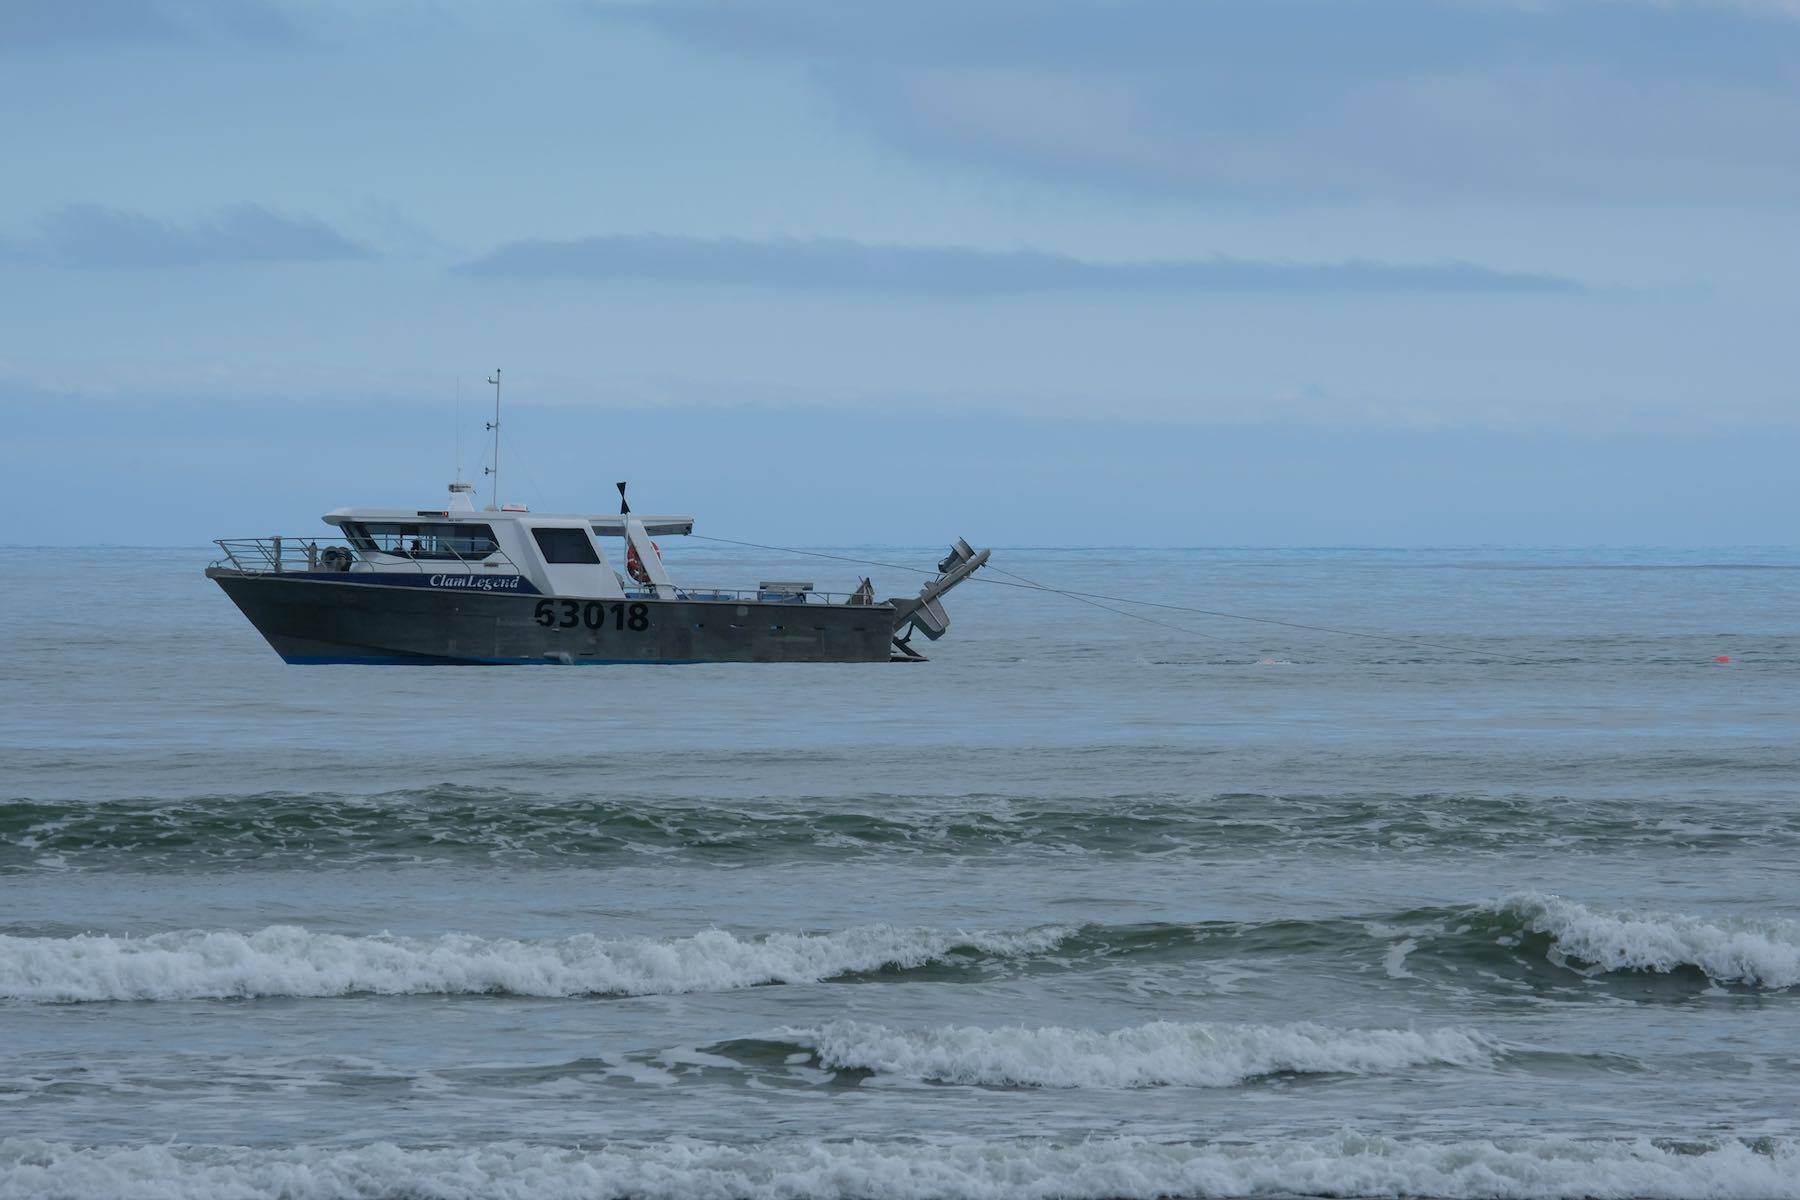 Fishing vessel 63018 working very close to shore again.